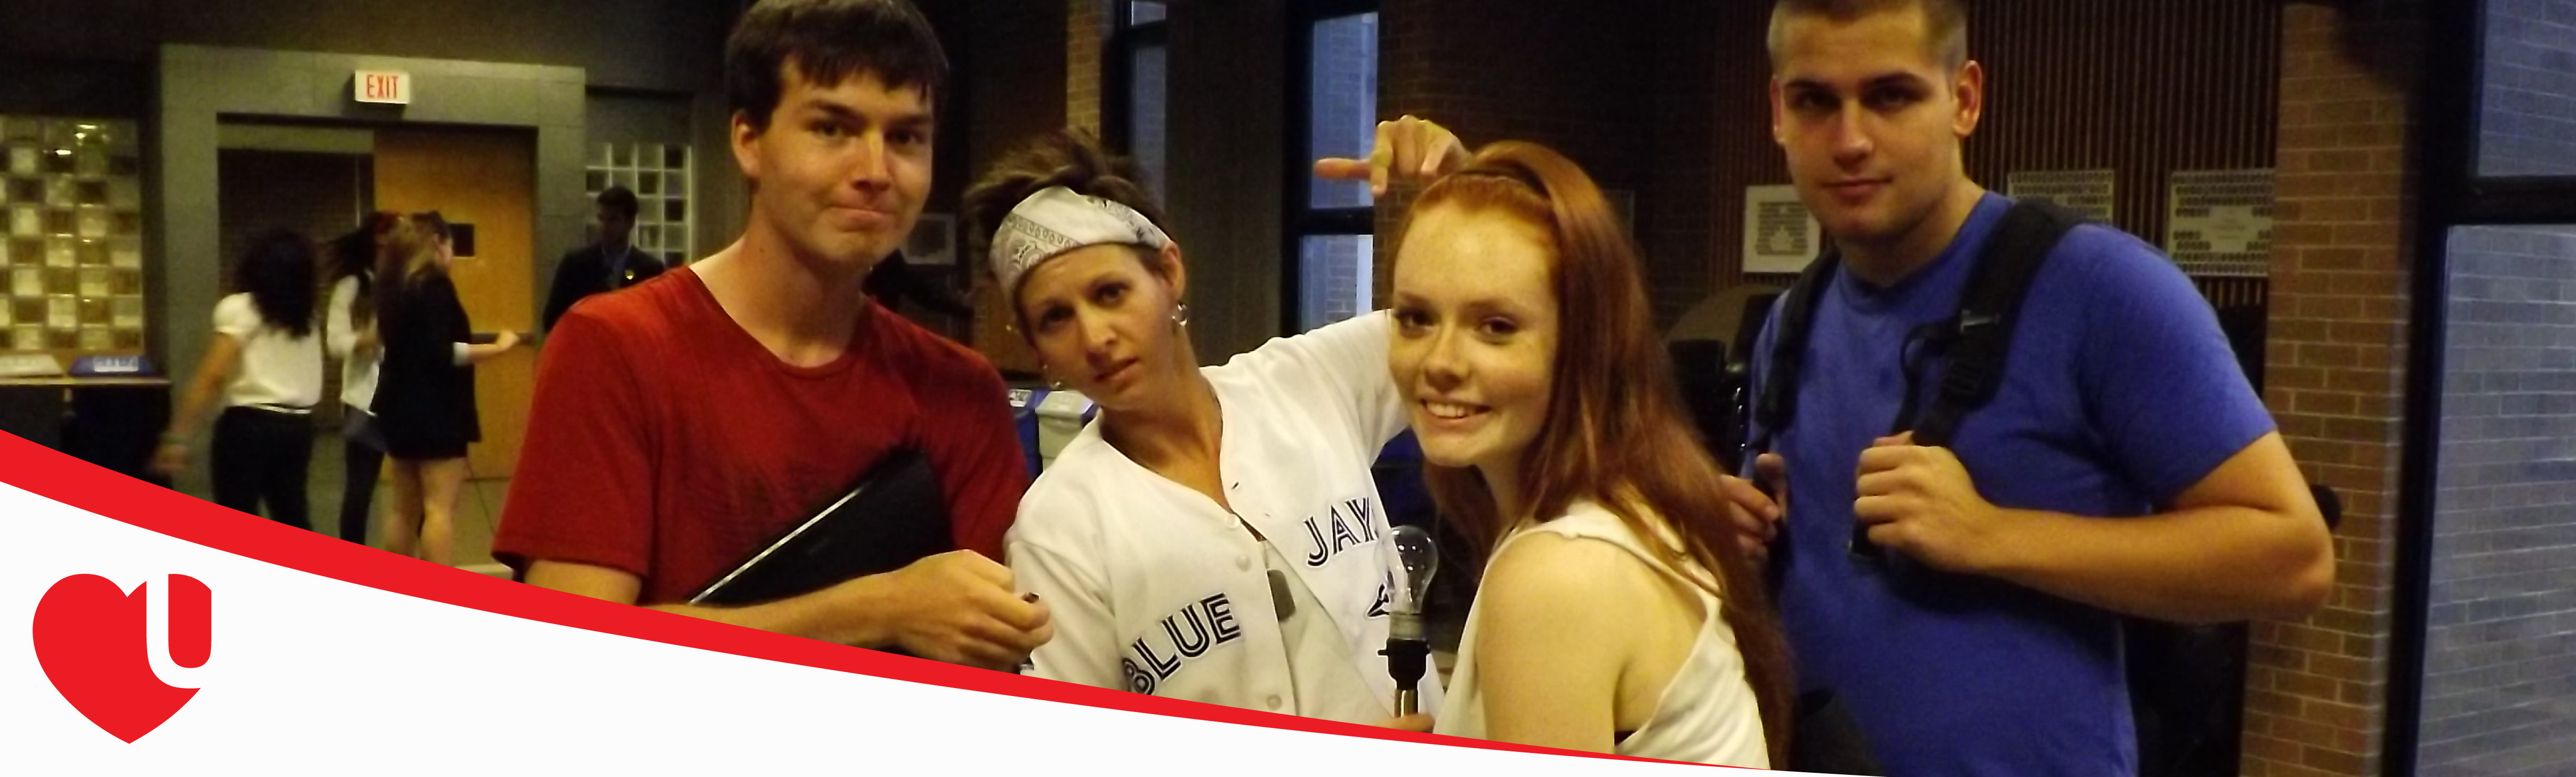 Residence Life at York University – group training